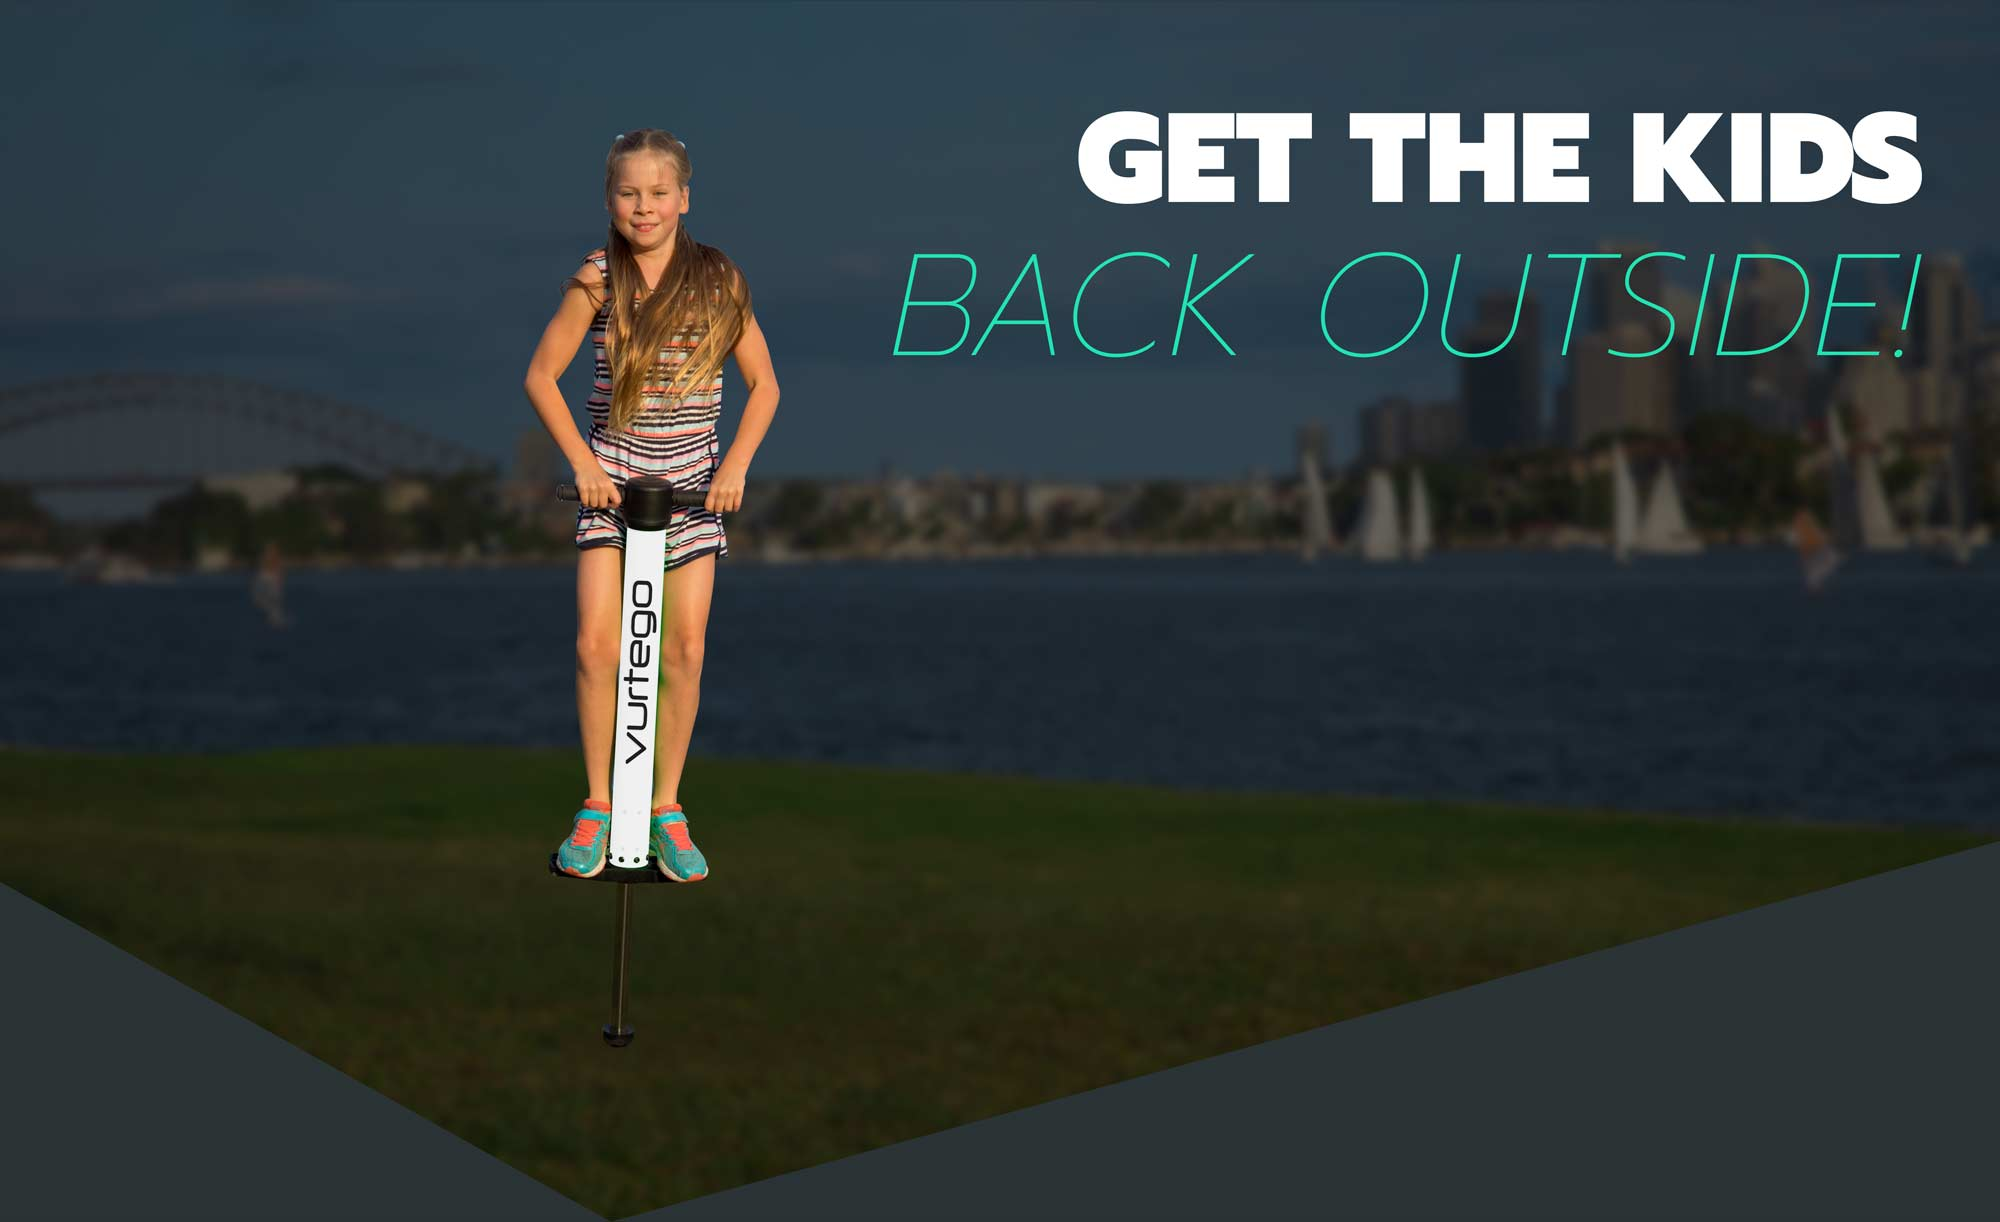 Get the Kids Outside with this Pogo Stick